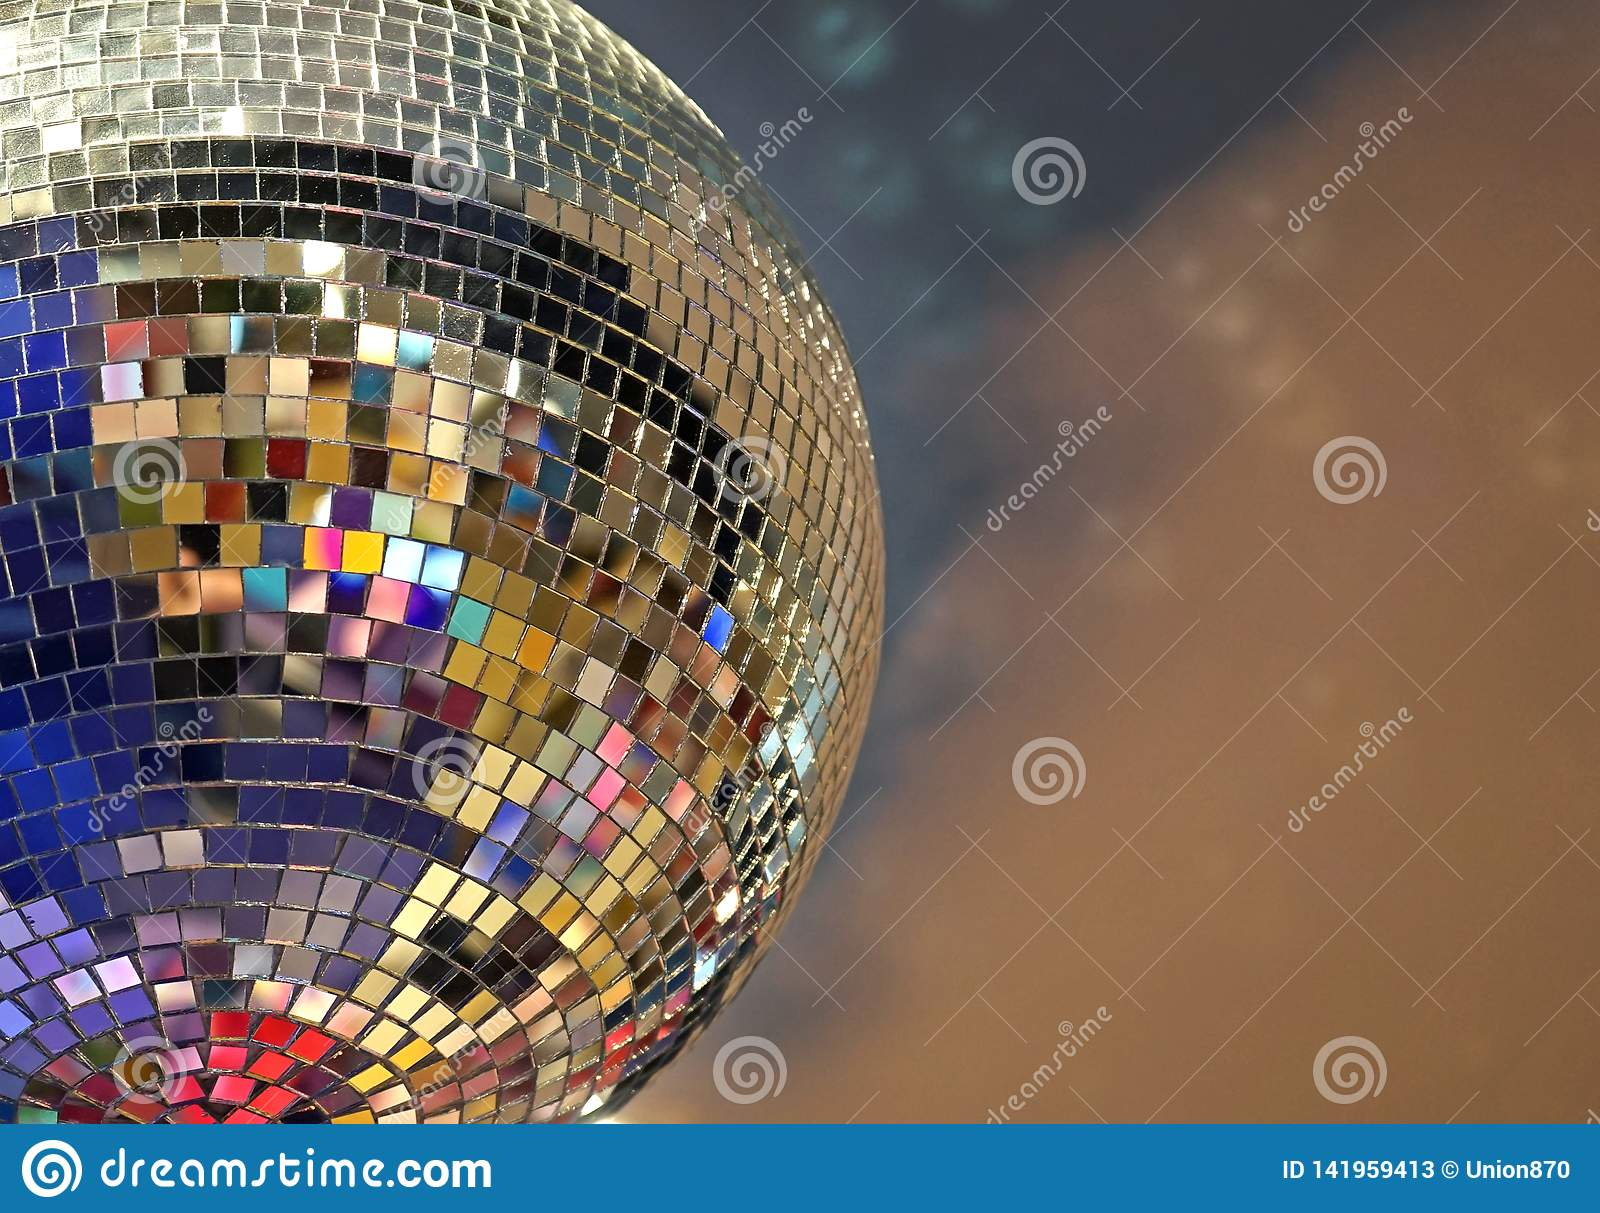 Shiny mirror ball with colorful highlights at the disco